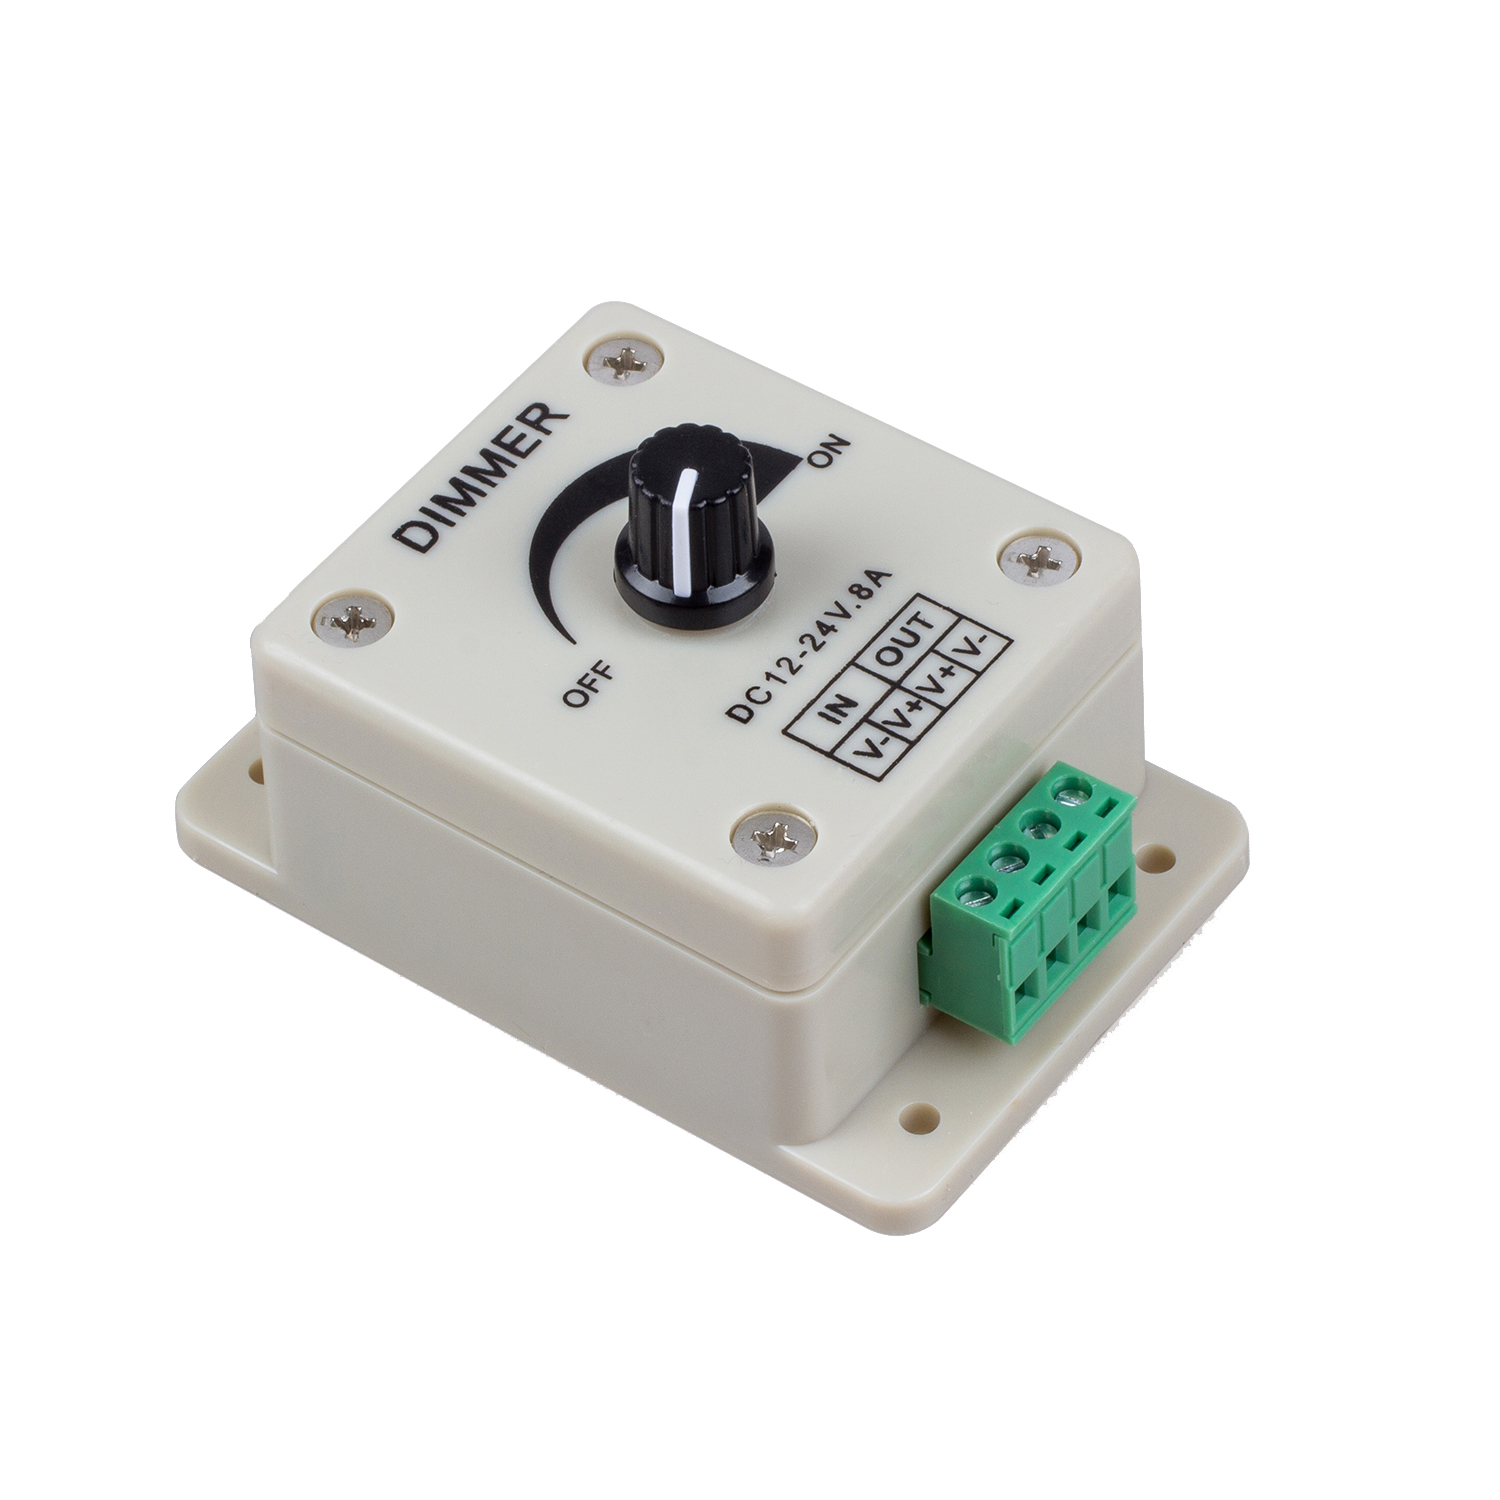 Pwm Dimmer Pwm Dimming Controller For Led Lights Ribbon Strip 12 24